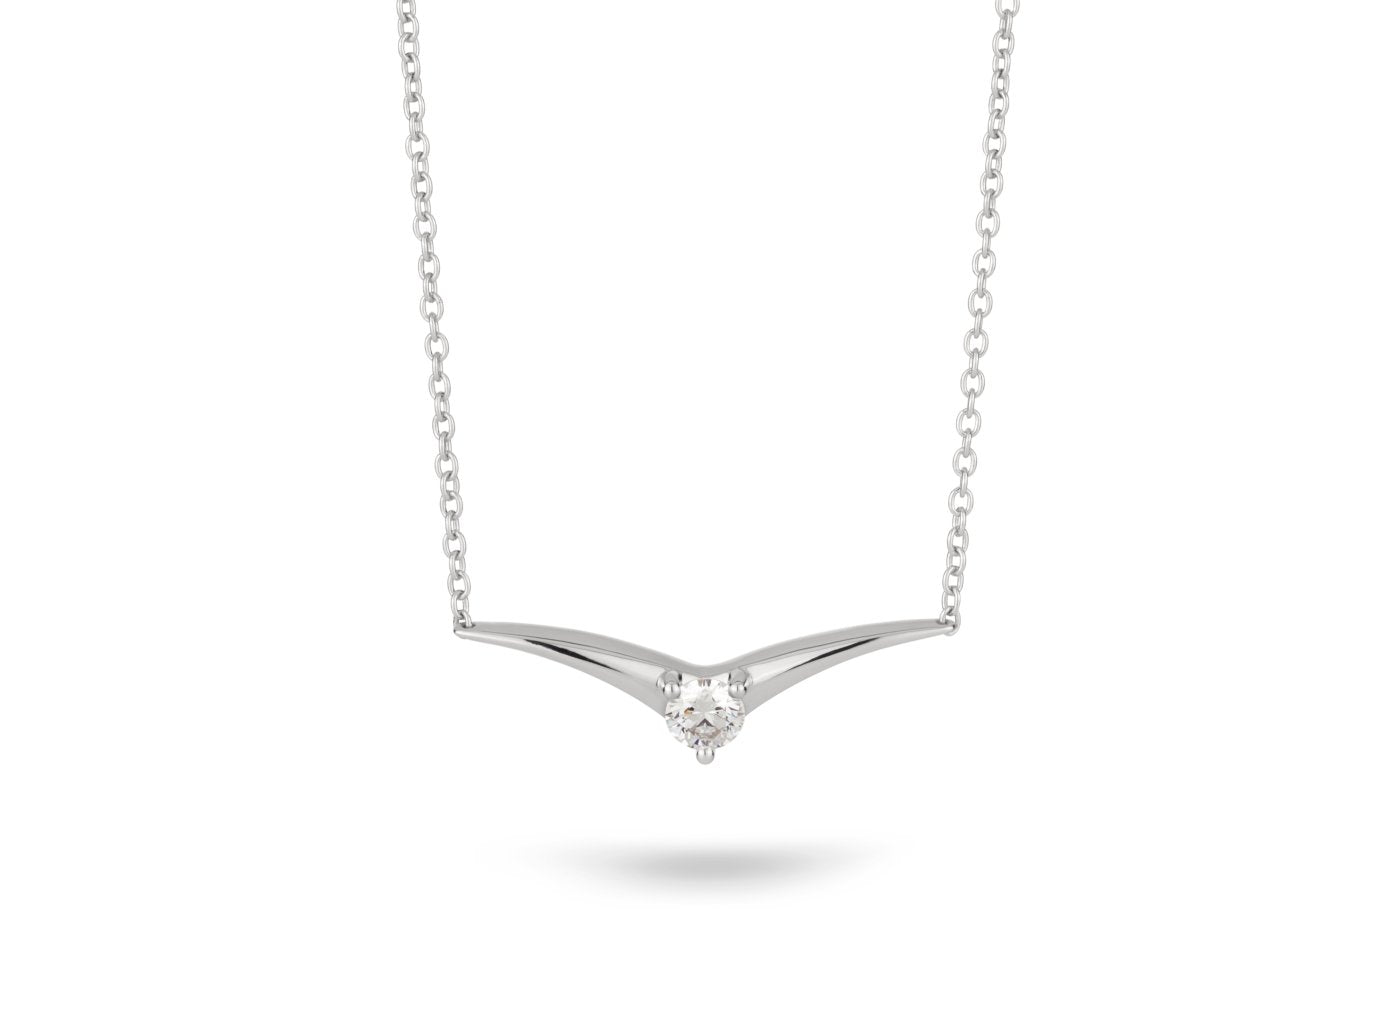 Front view of Chevron 1/4 carat pendant with white diamond